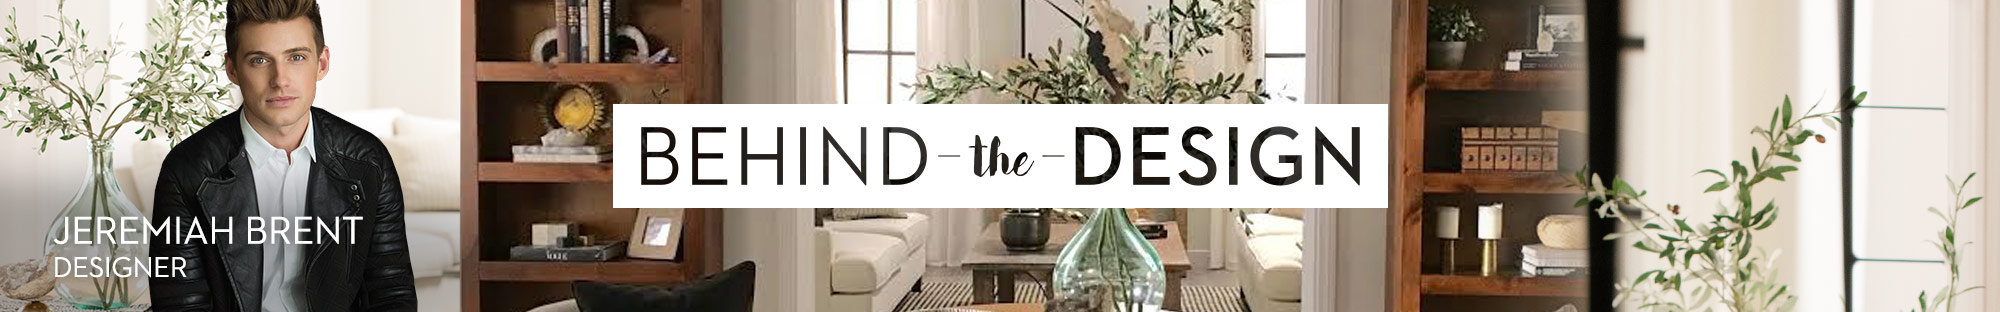 Behind the Design - Jeremiah Brent